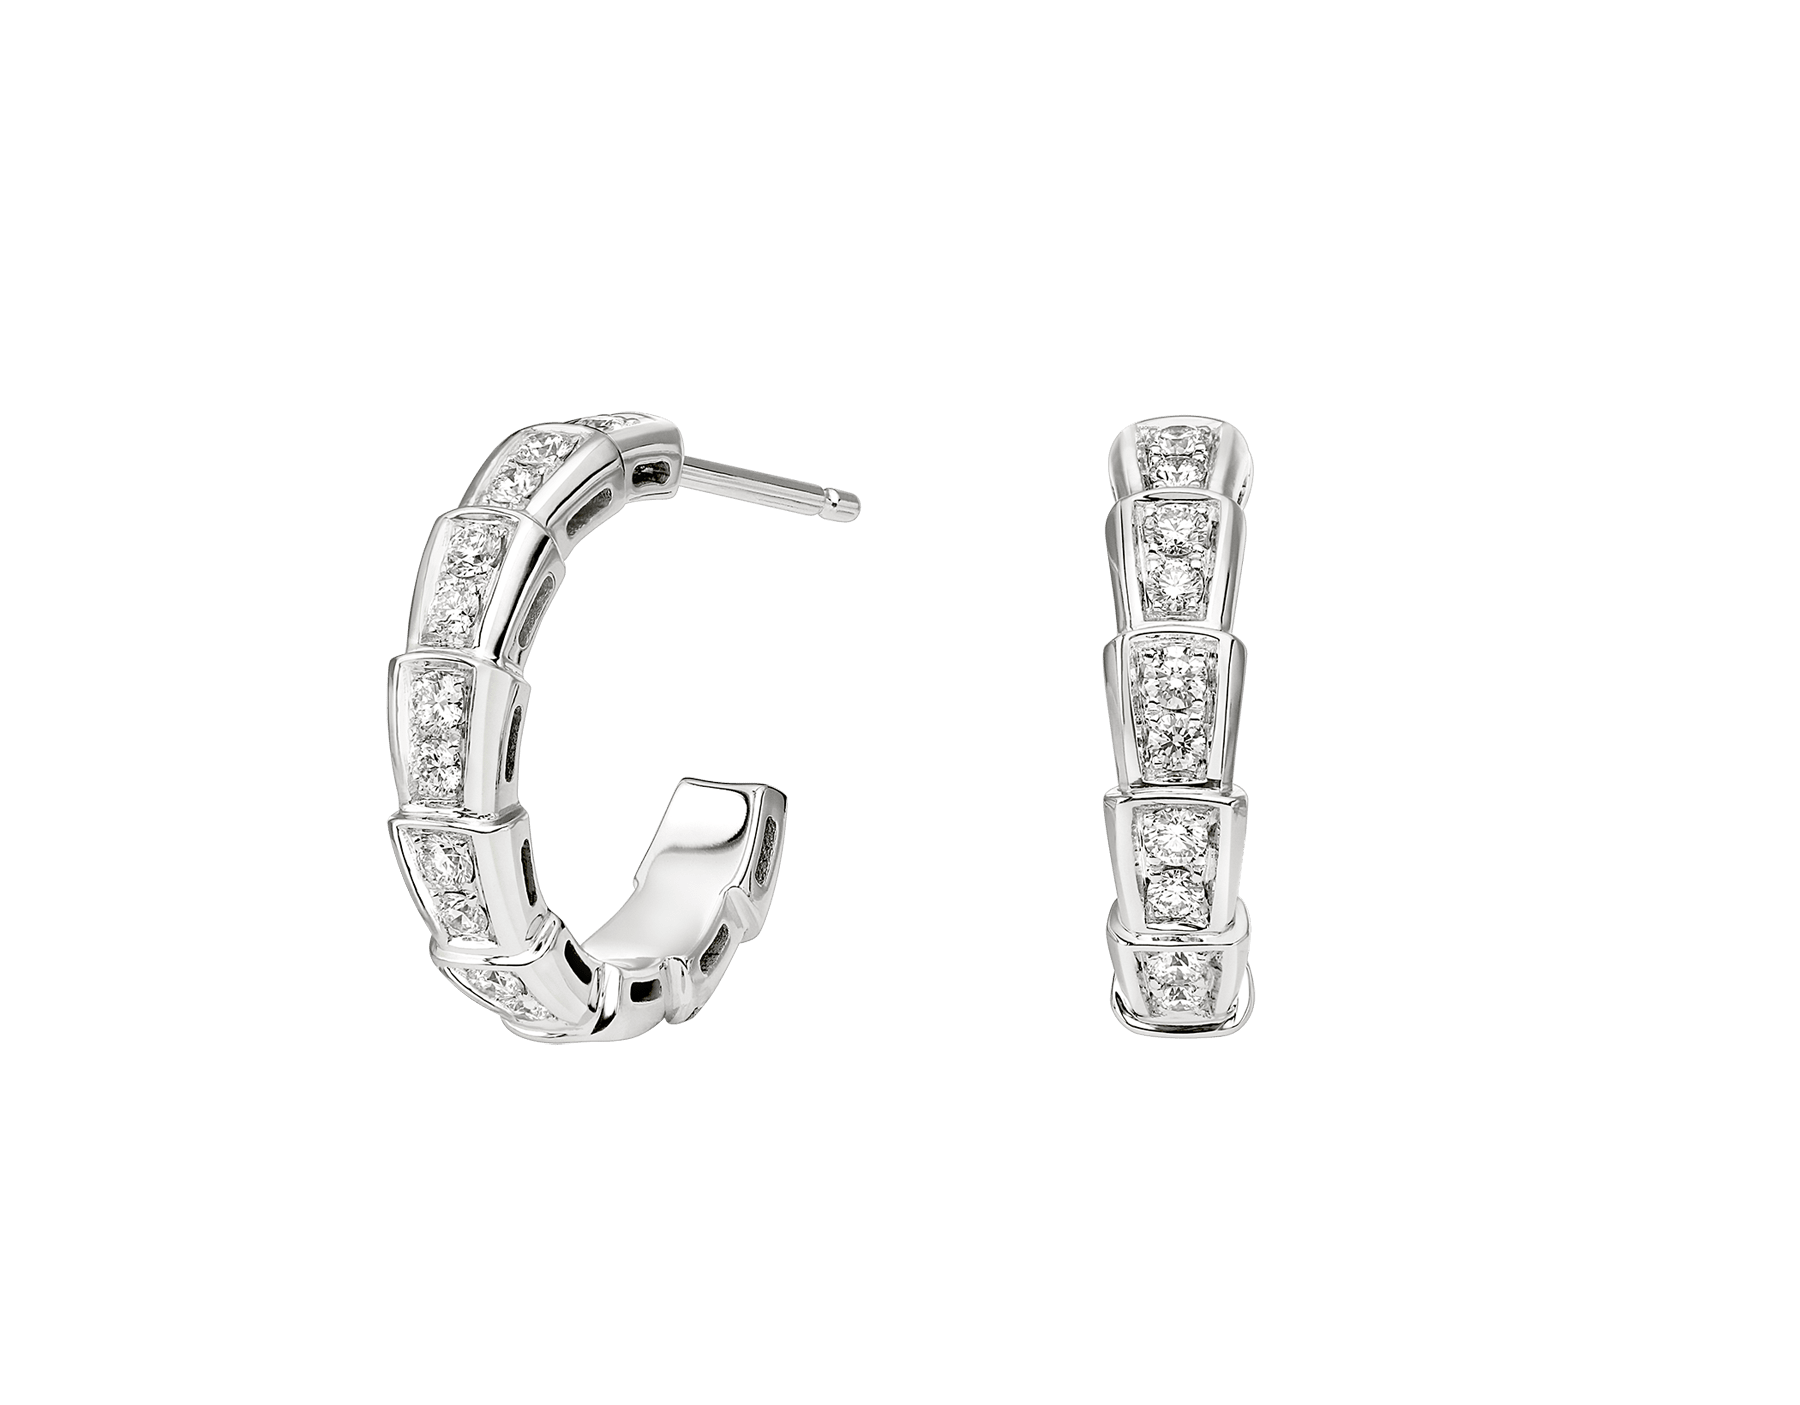 Serpenti Viper 18 kt white gold earrings set with pavé diamonds 356172 image 1